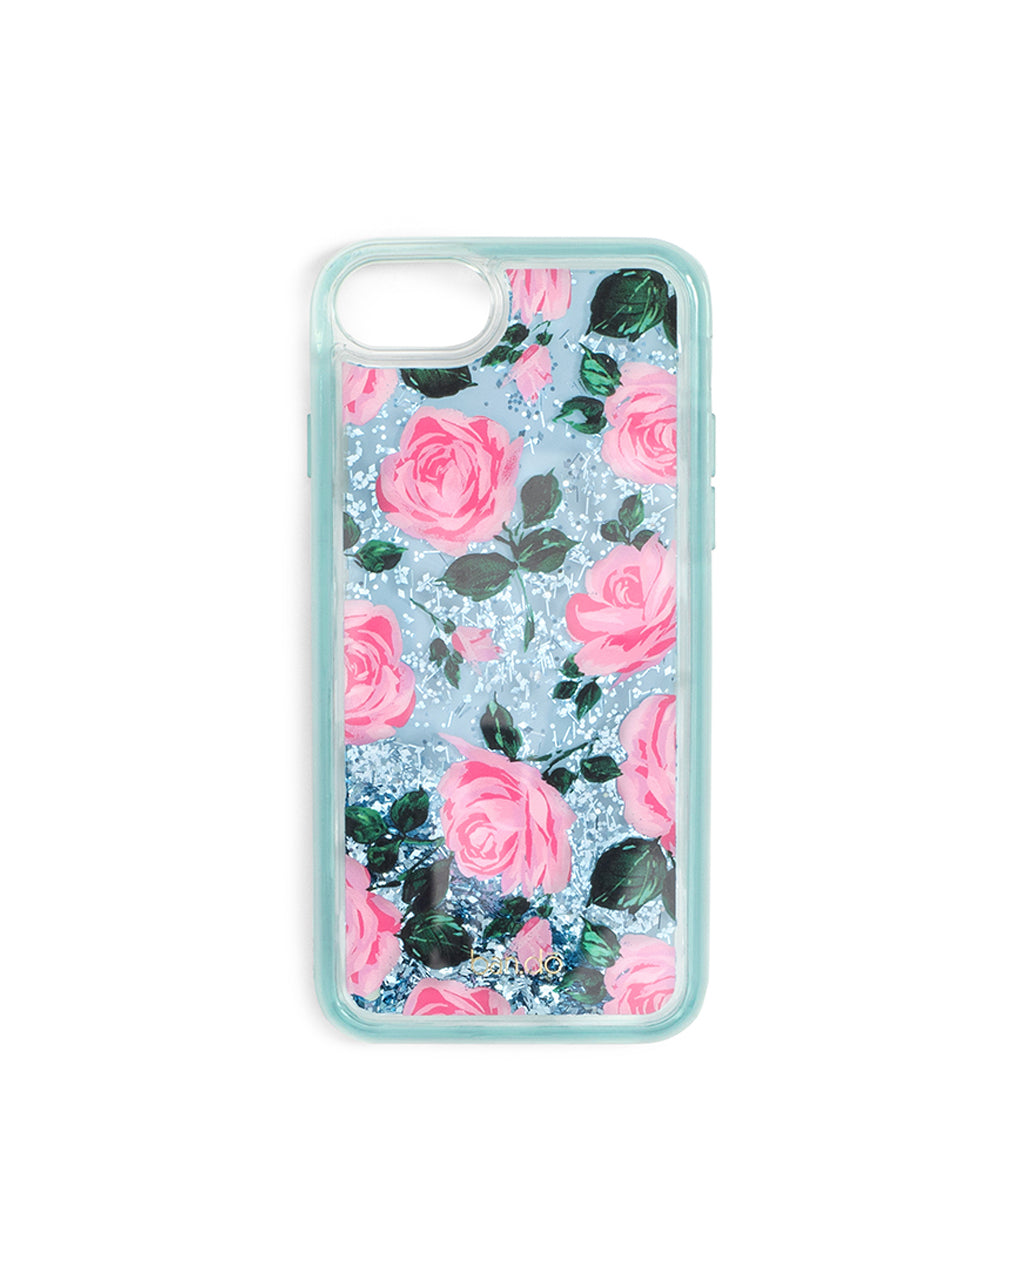 Glitter Bomb iPhone Case - Rose Parade